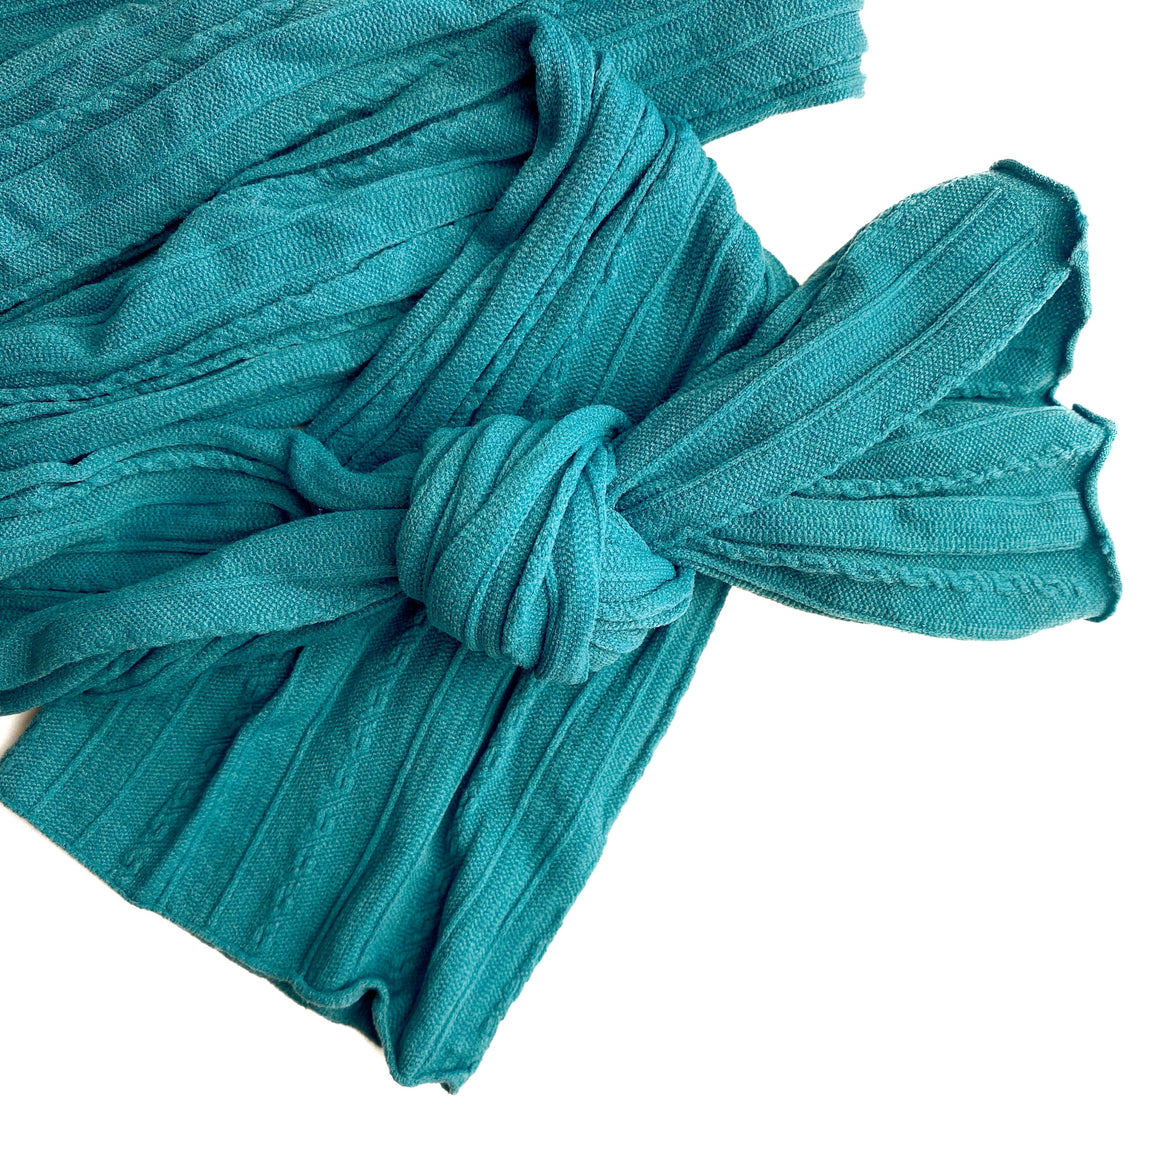 Teal Braid Knit Nylon Material